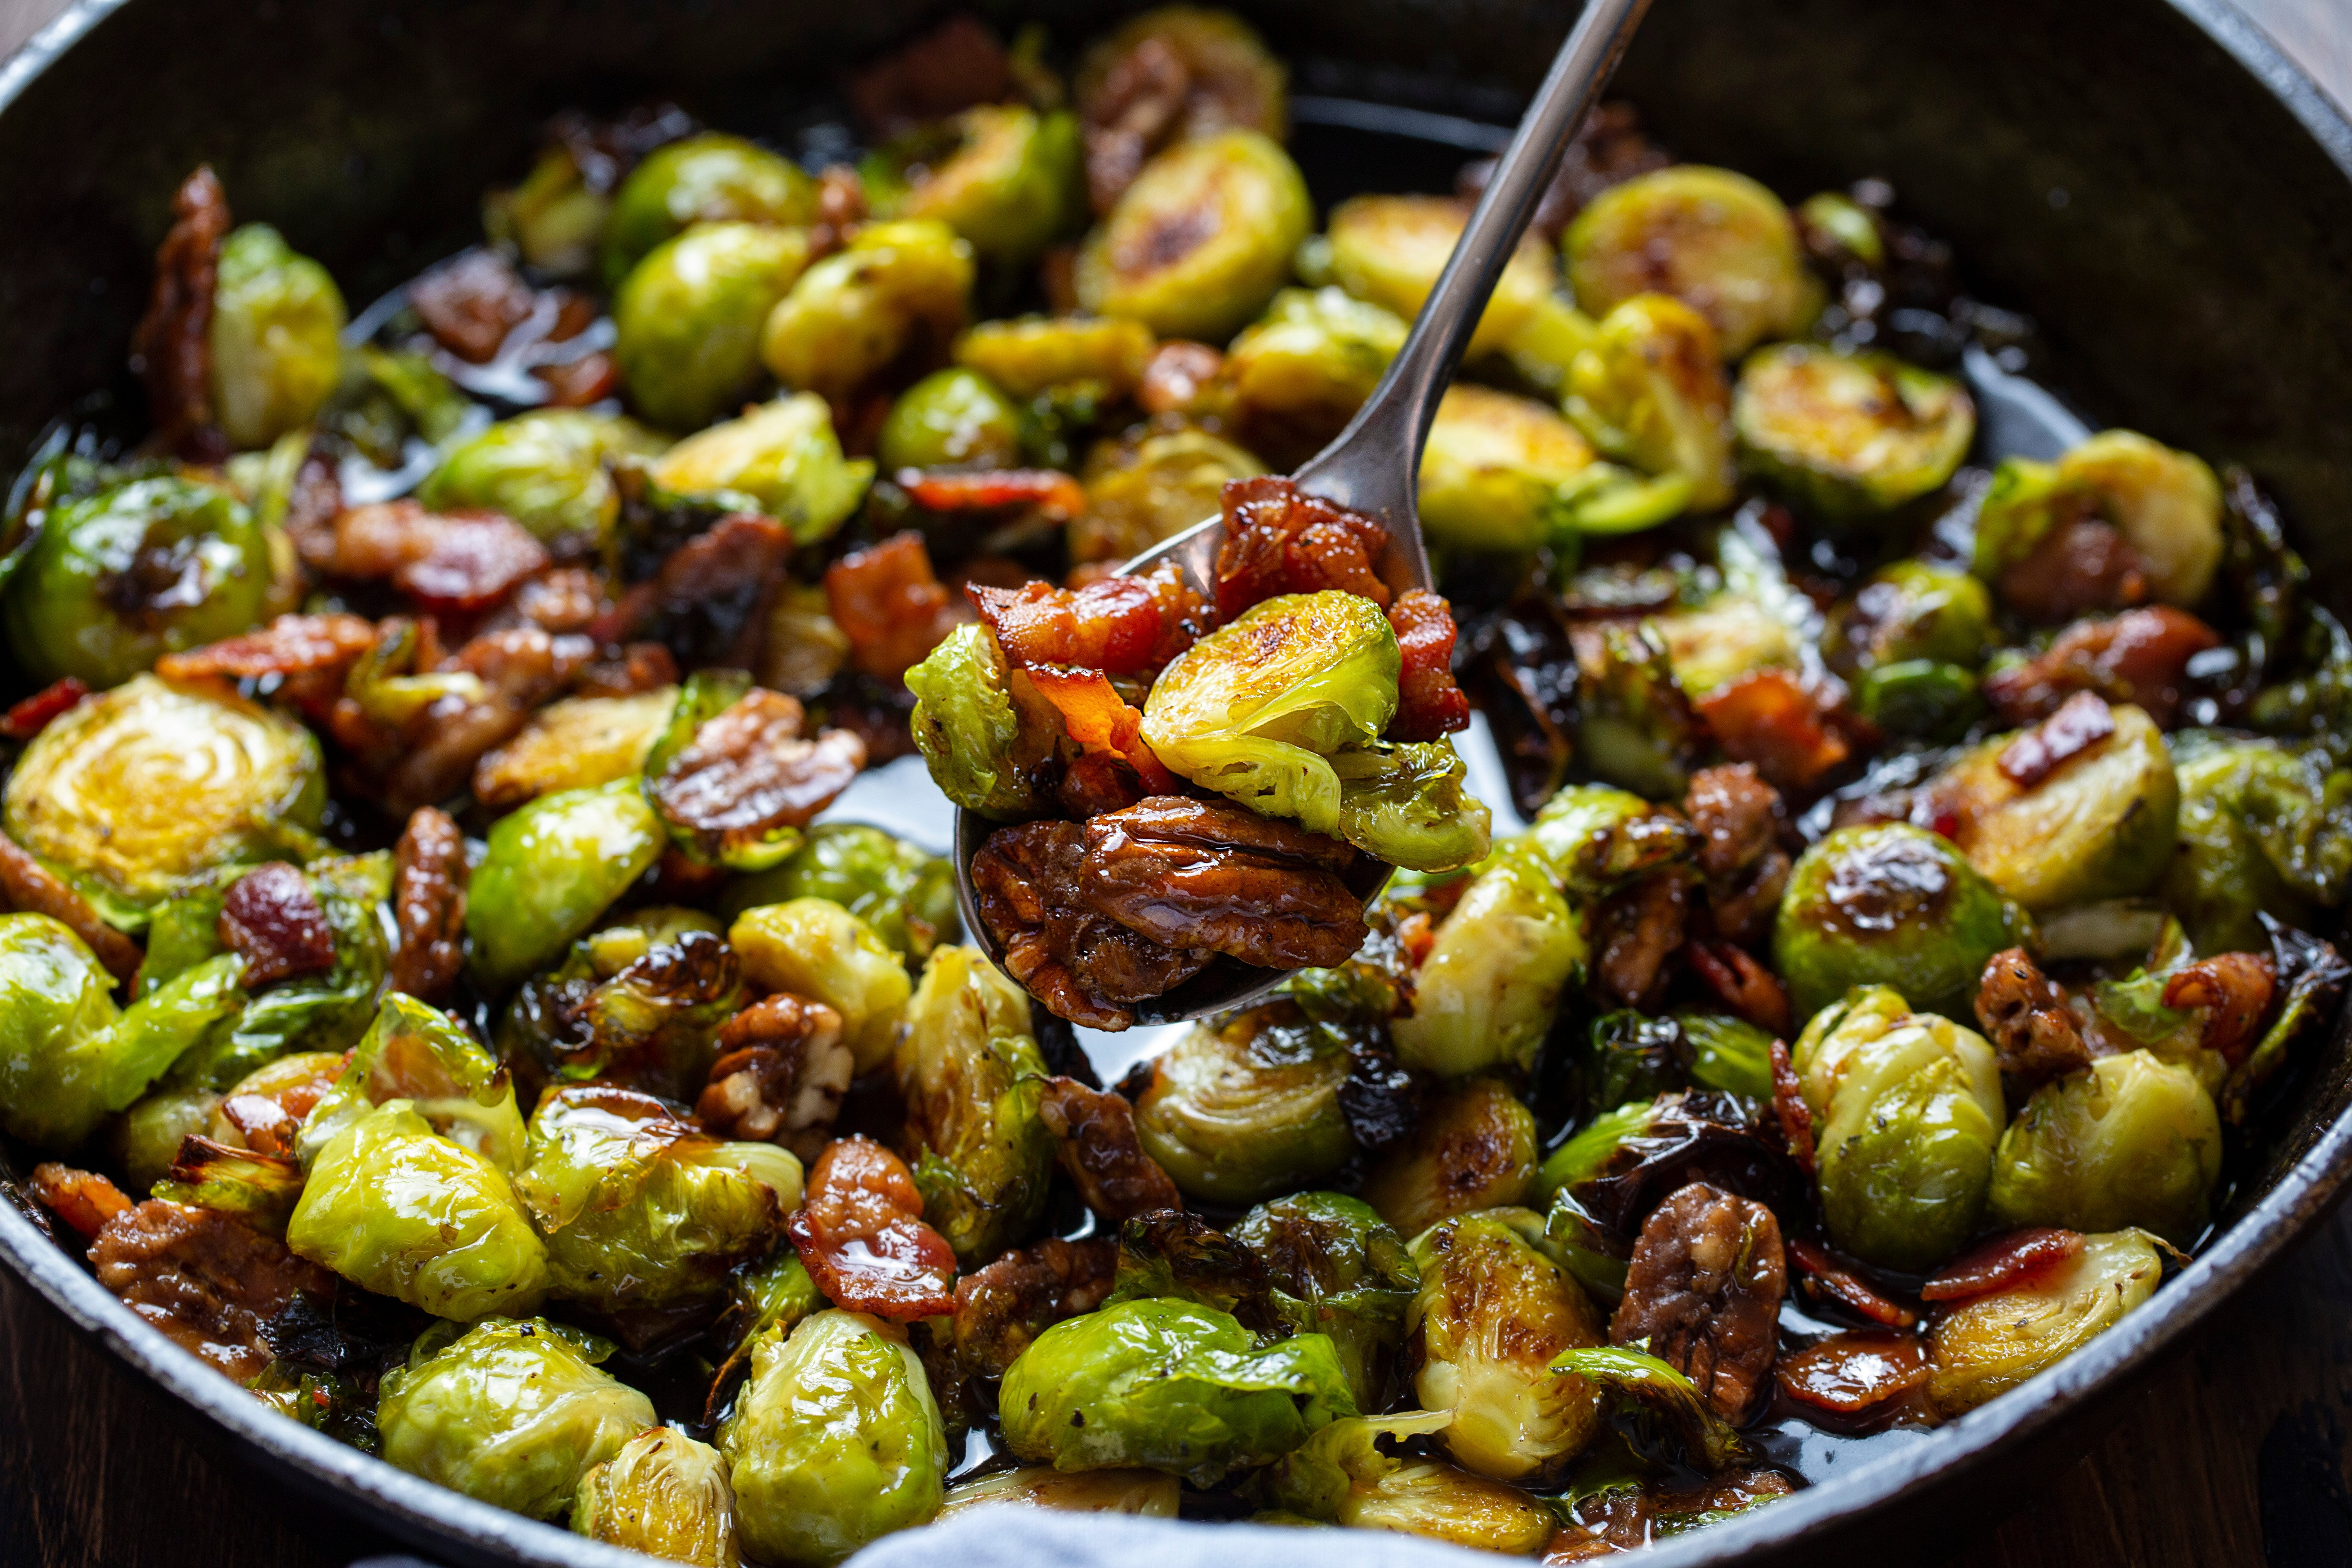 Brussel Sprouts with a Maple Bourbon Glaze Recipe